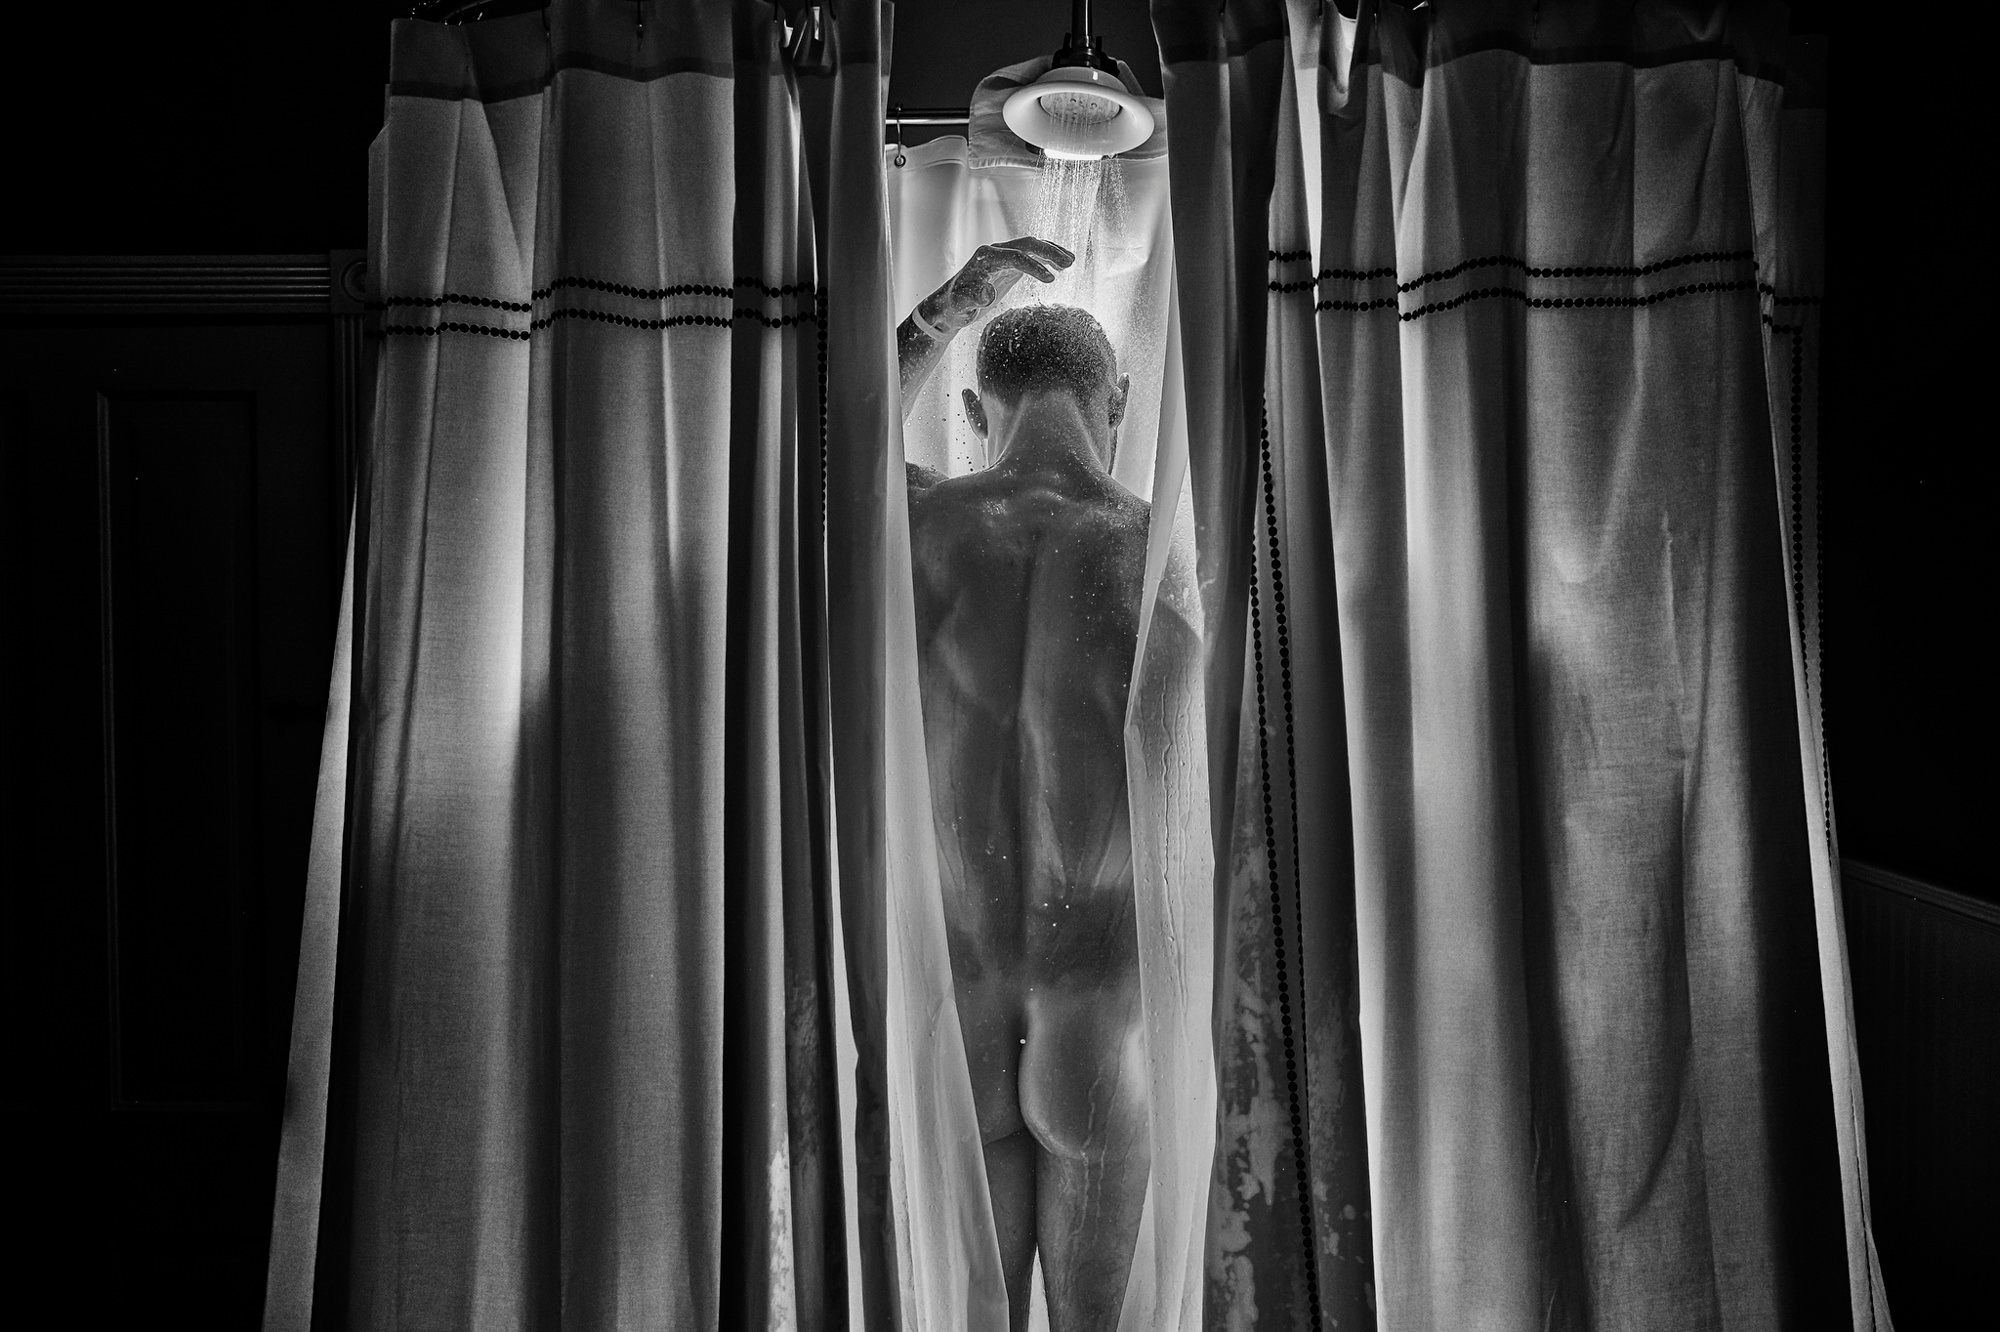 Groom showering framed by shower curtains, by Chrisman Studios